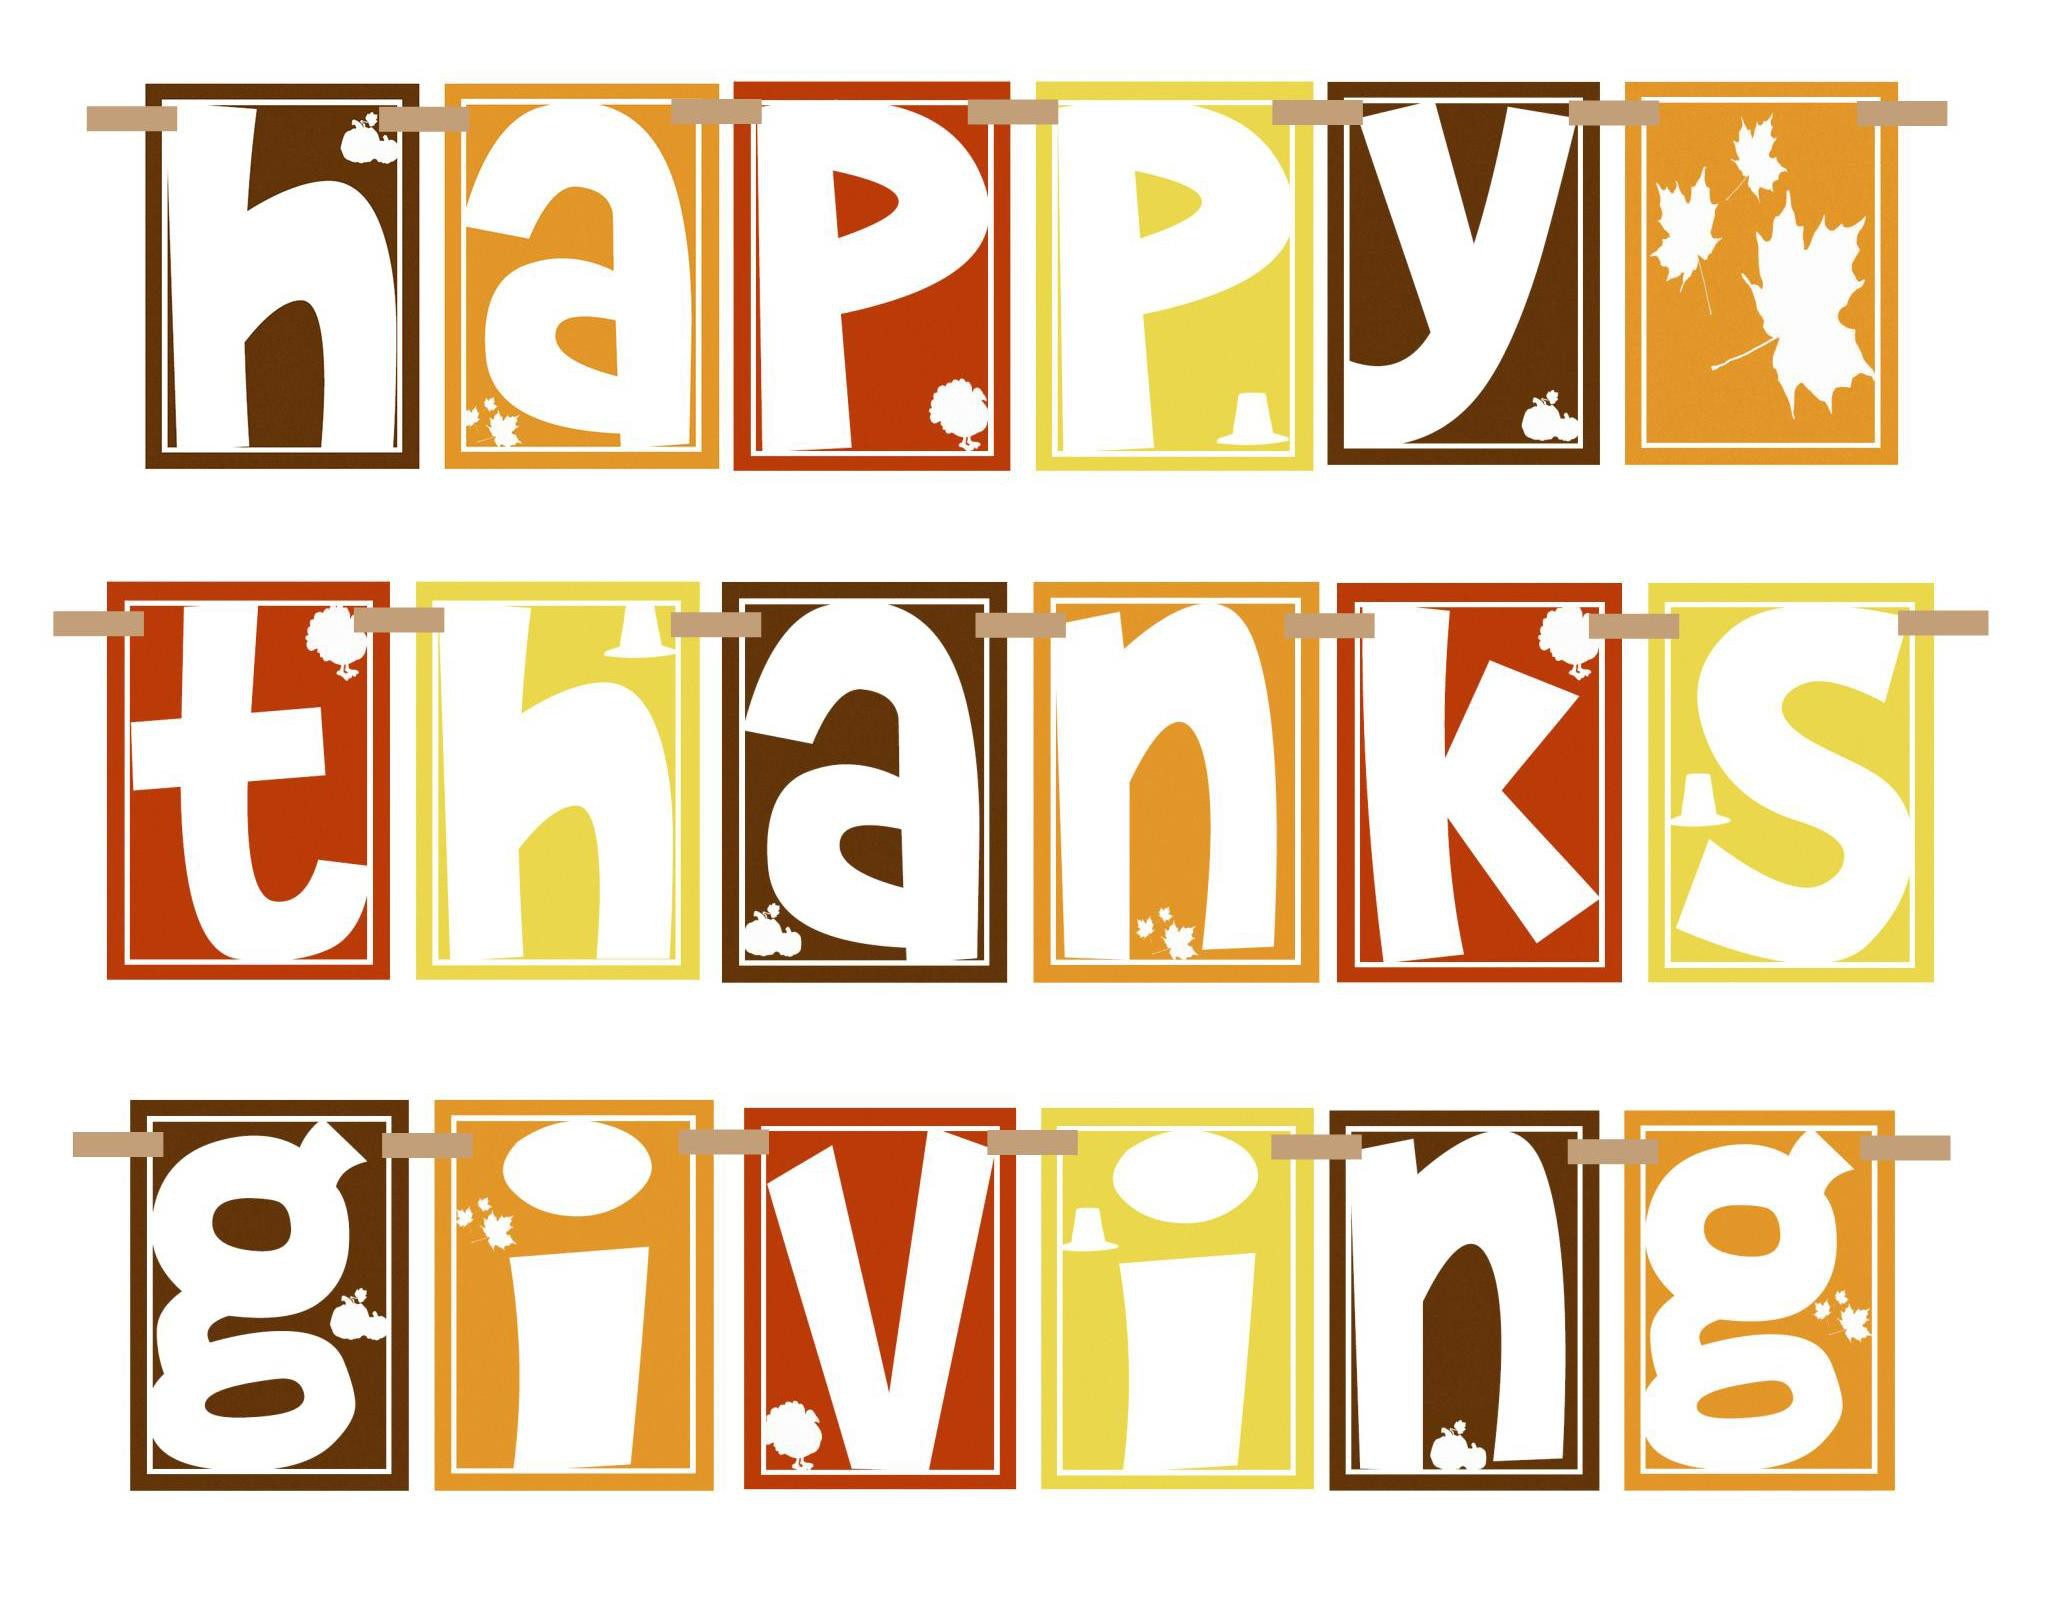 Wwwclipartpandacom search graphic freeuse stock Wwwclipartpandacom thanksgiving - ClipartFest graphic freeuse stock